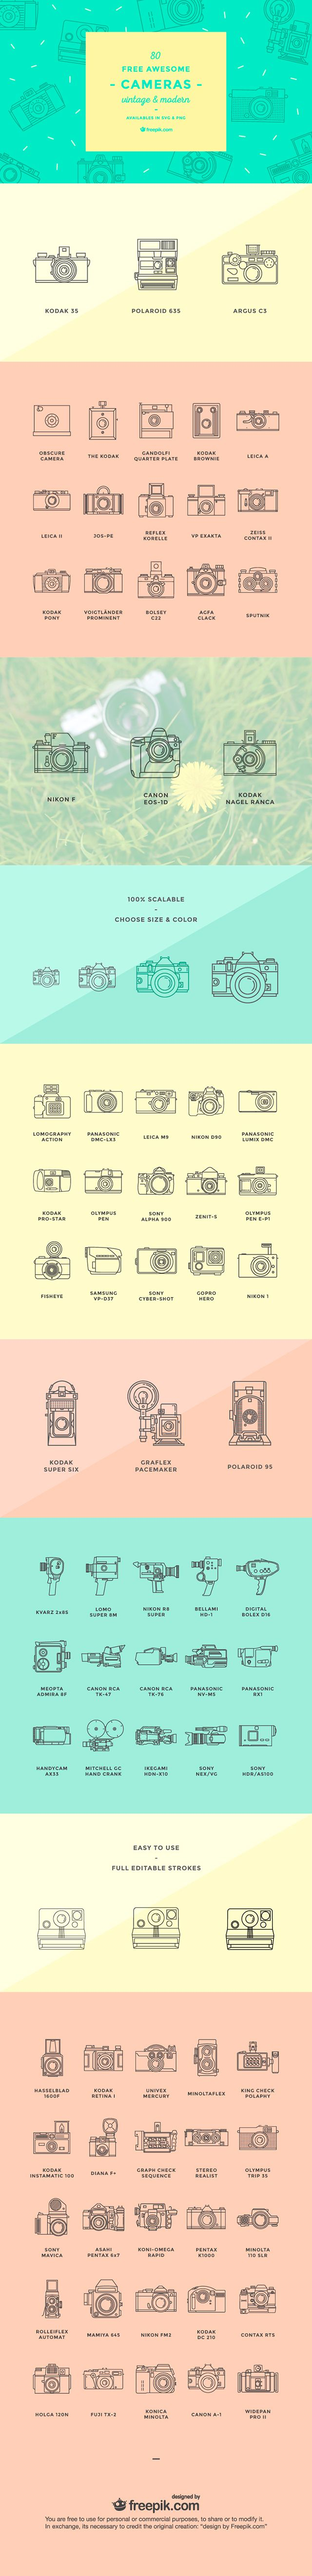 80 free awesome modern and vintage camera vector icons (1.3 MB) | creativenerds.co.uk